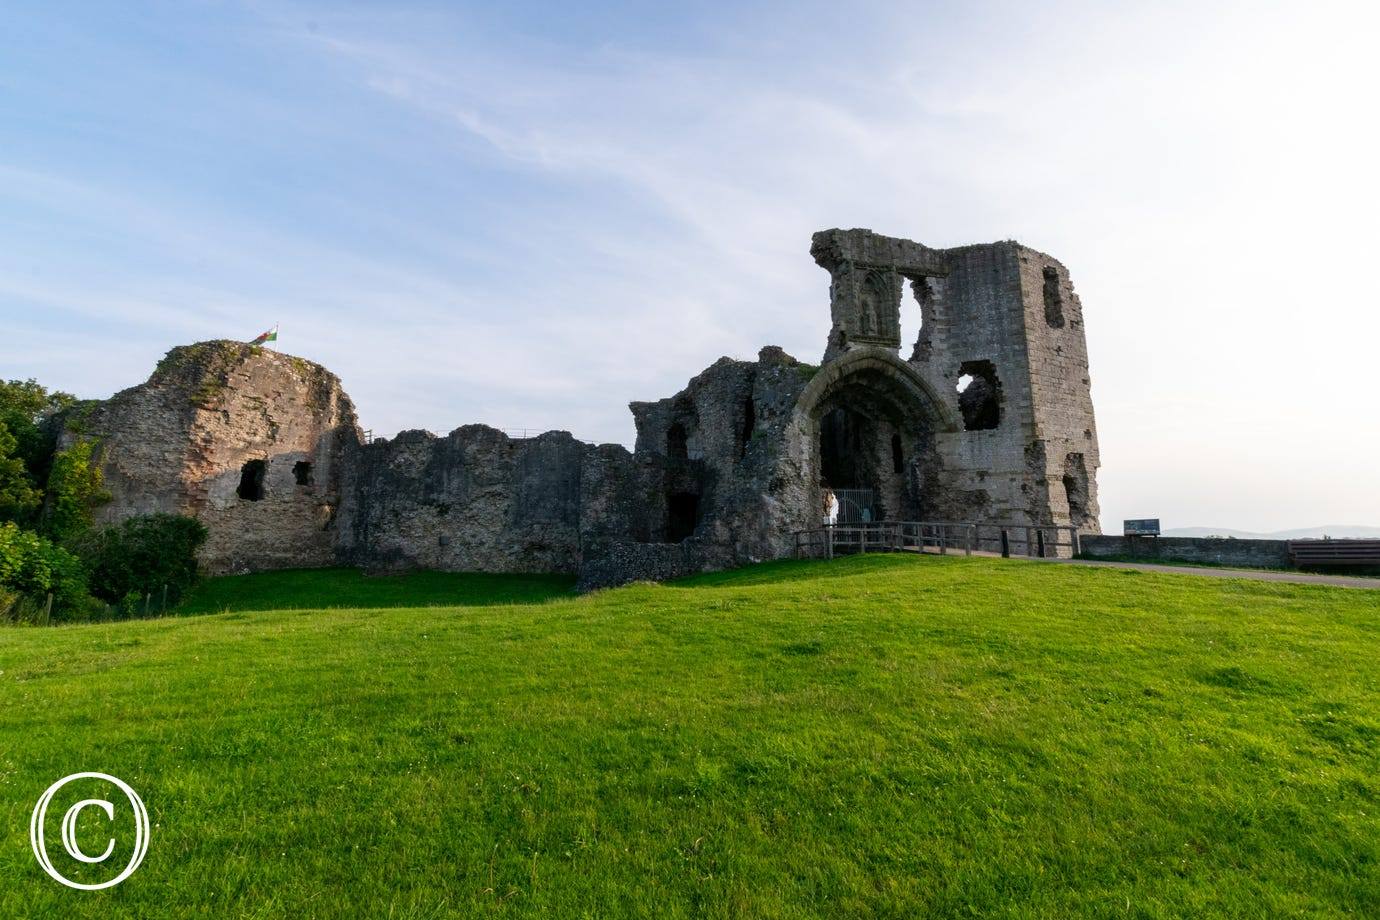 Denbigh Castle (9 miles) - one of many castles in the area